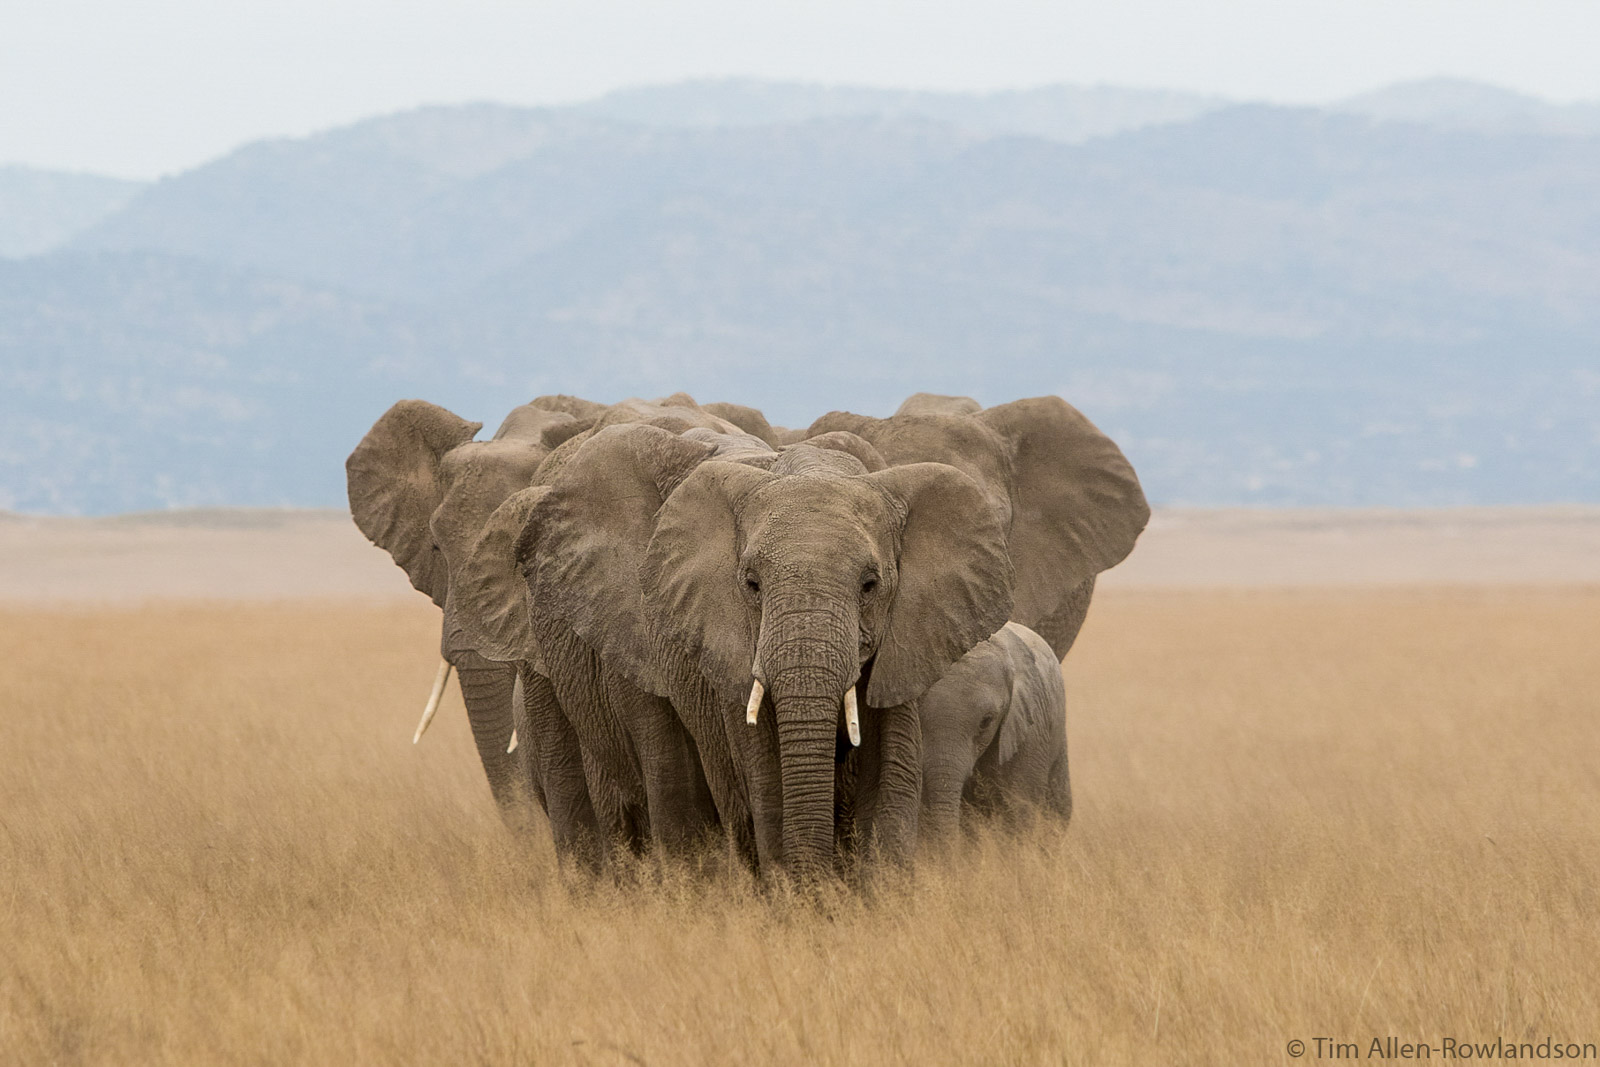 A tight herd of elephants heading for water, Amboseli